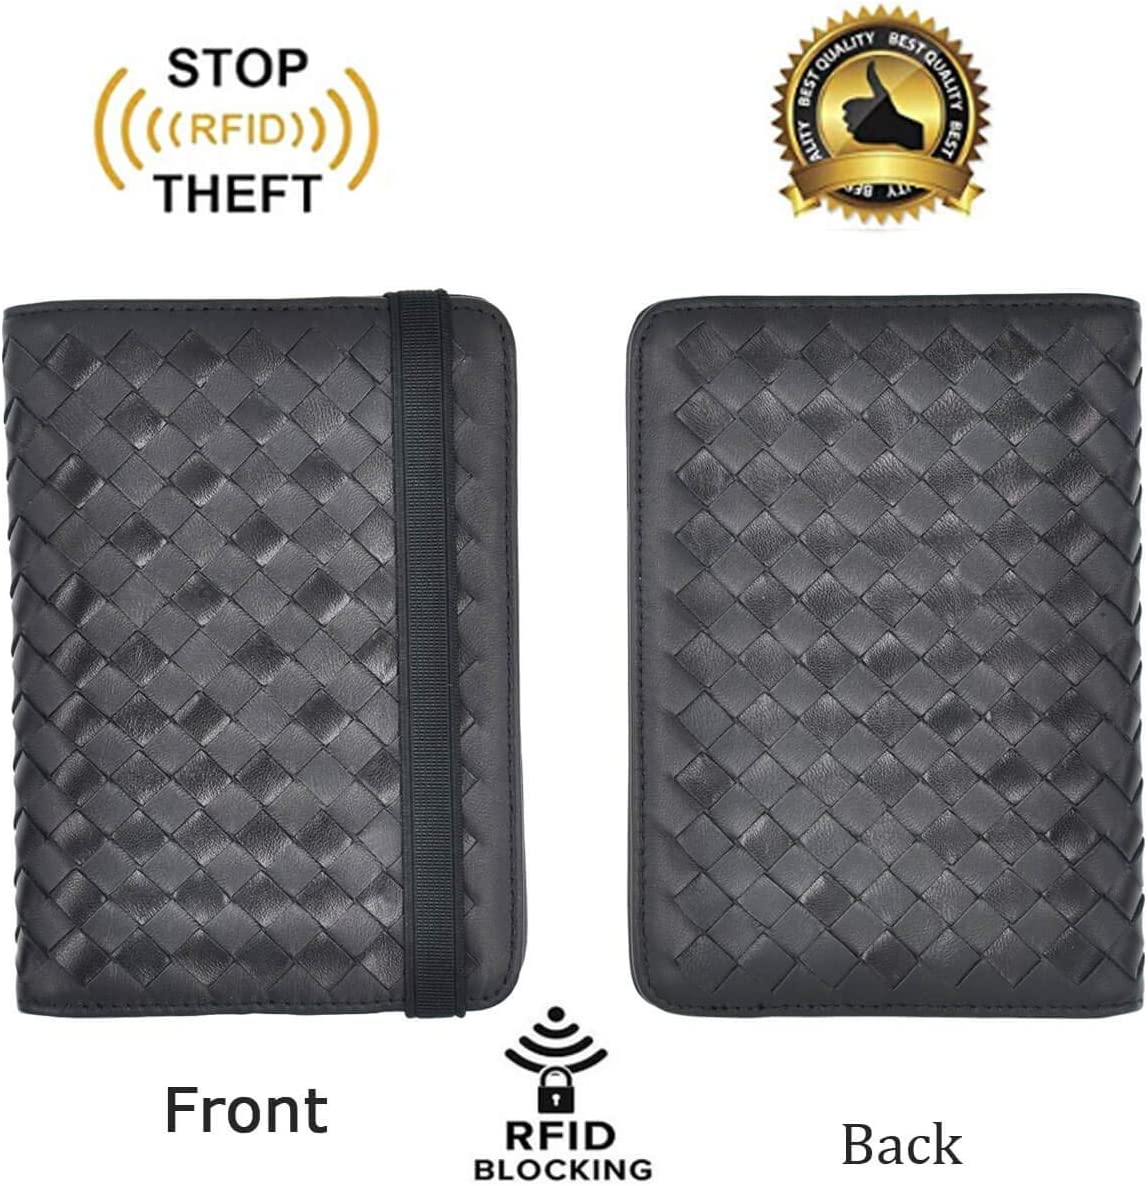 Leather Passport Wallet Holder Case Travel Wallets for Men Women with Elastic Band RFID Blocking